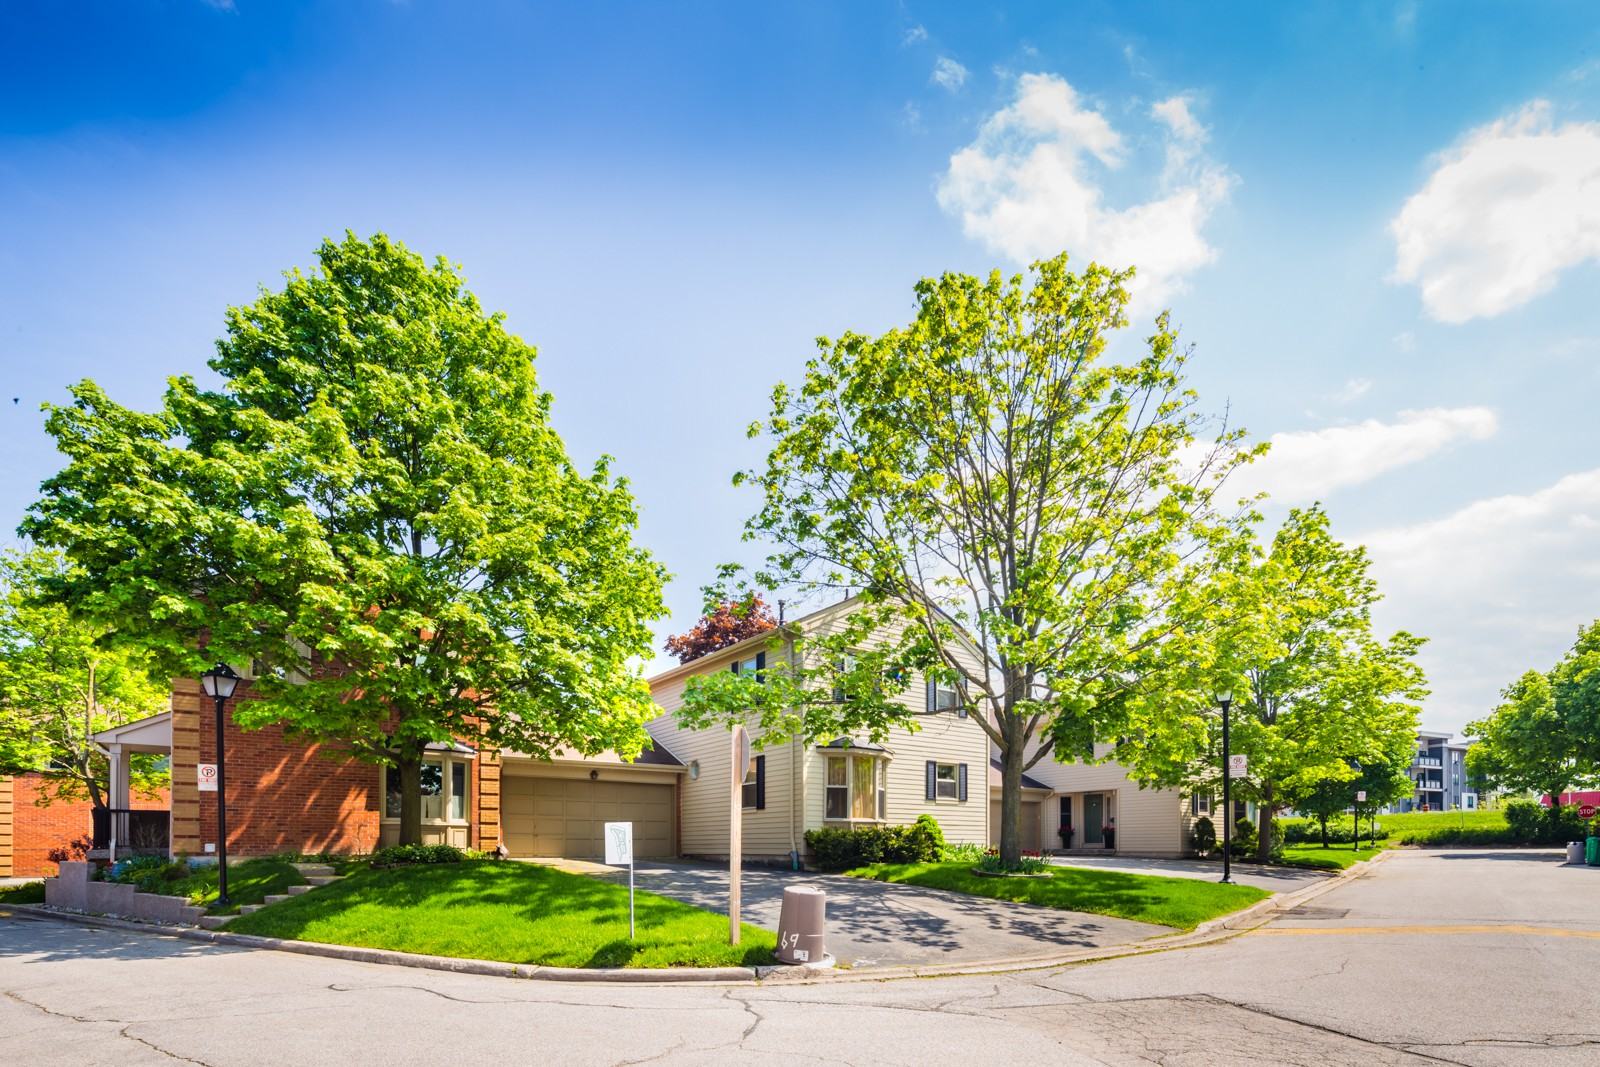 3265 South Millway Townhouses at 3265 South Millway, Mississauga 1